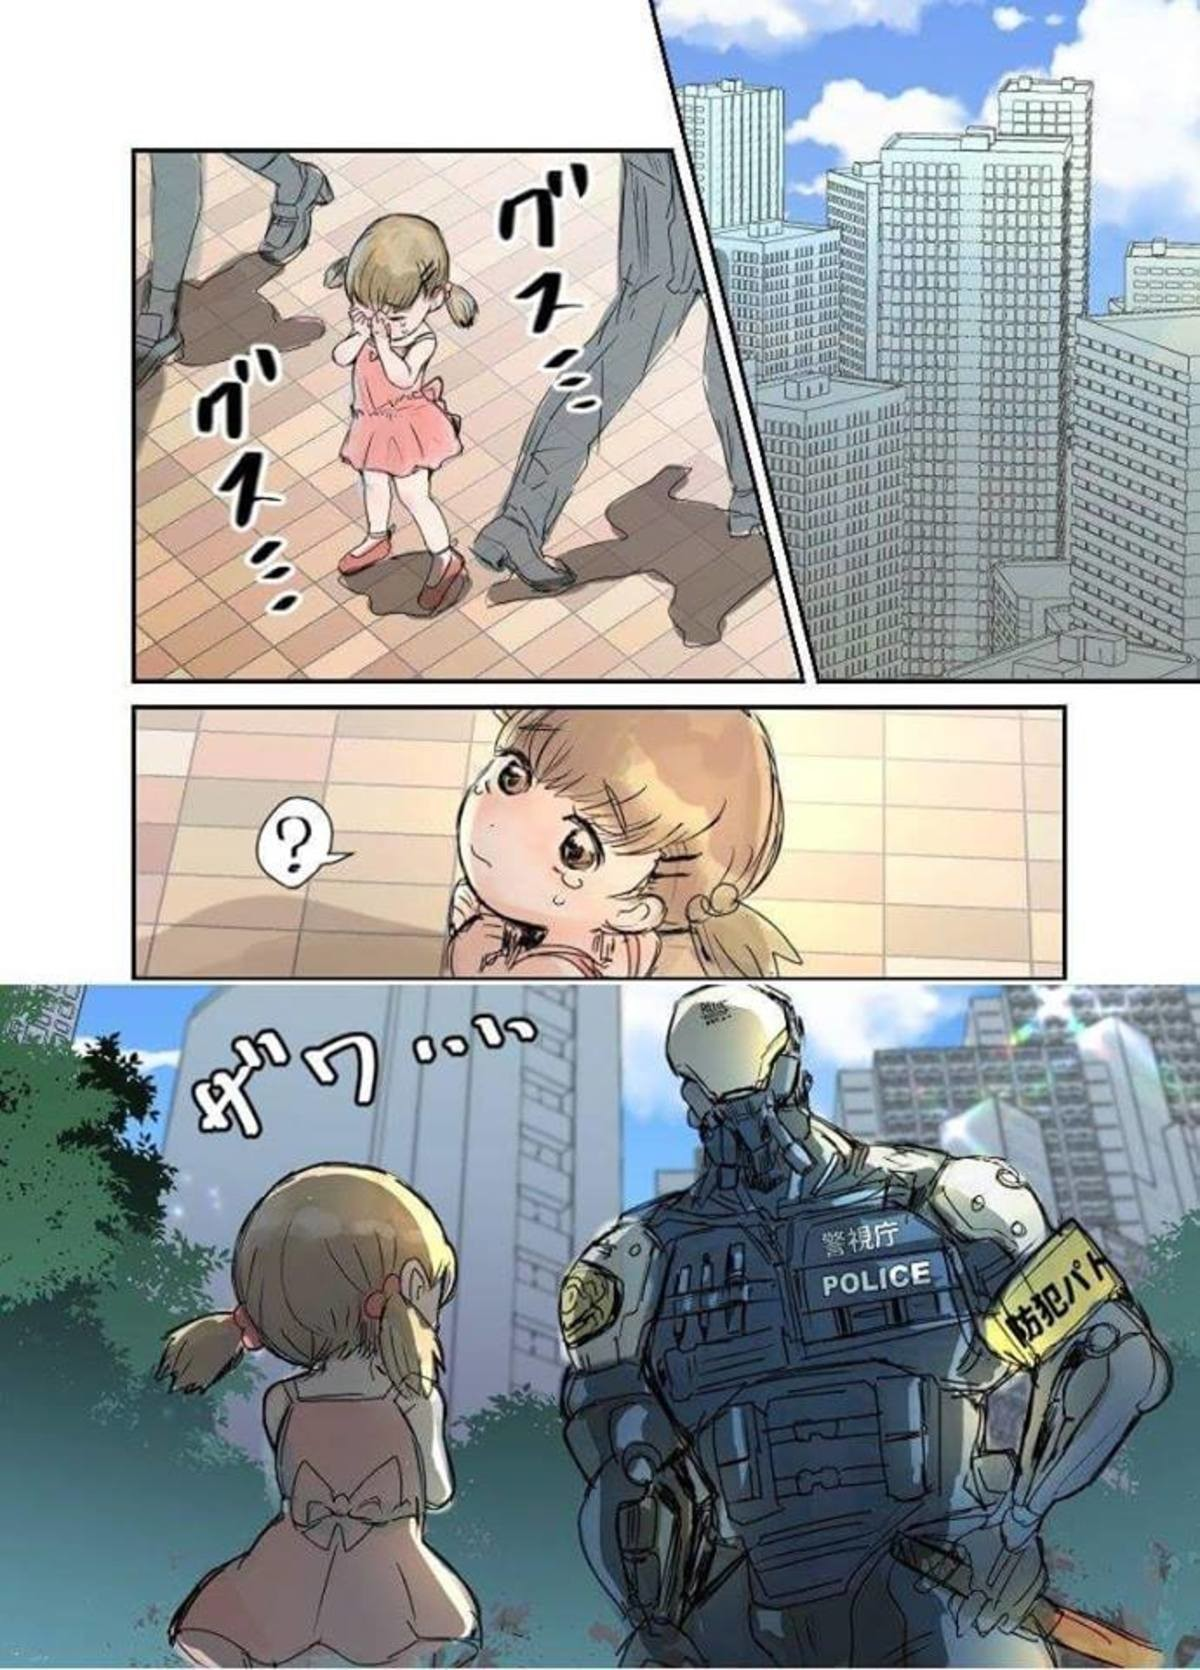 A Defenseless Meets Japanese Robocop ;). https://twitter.com/DONburisu/status/1035008376445403138 join list: SmolHol (1444 subs)Mention History join list:. Why the hell is this in the animelewds channel it belongs in the wholesome one